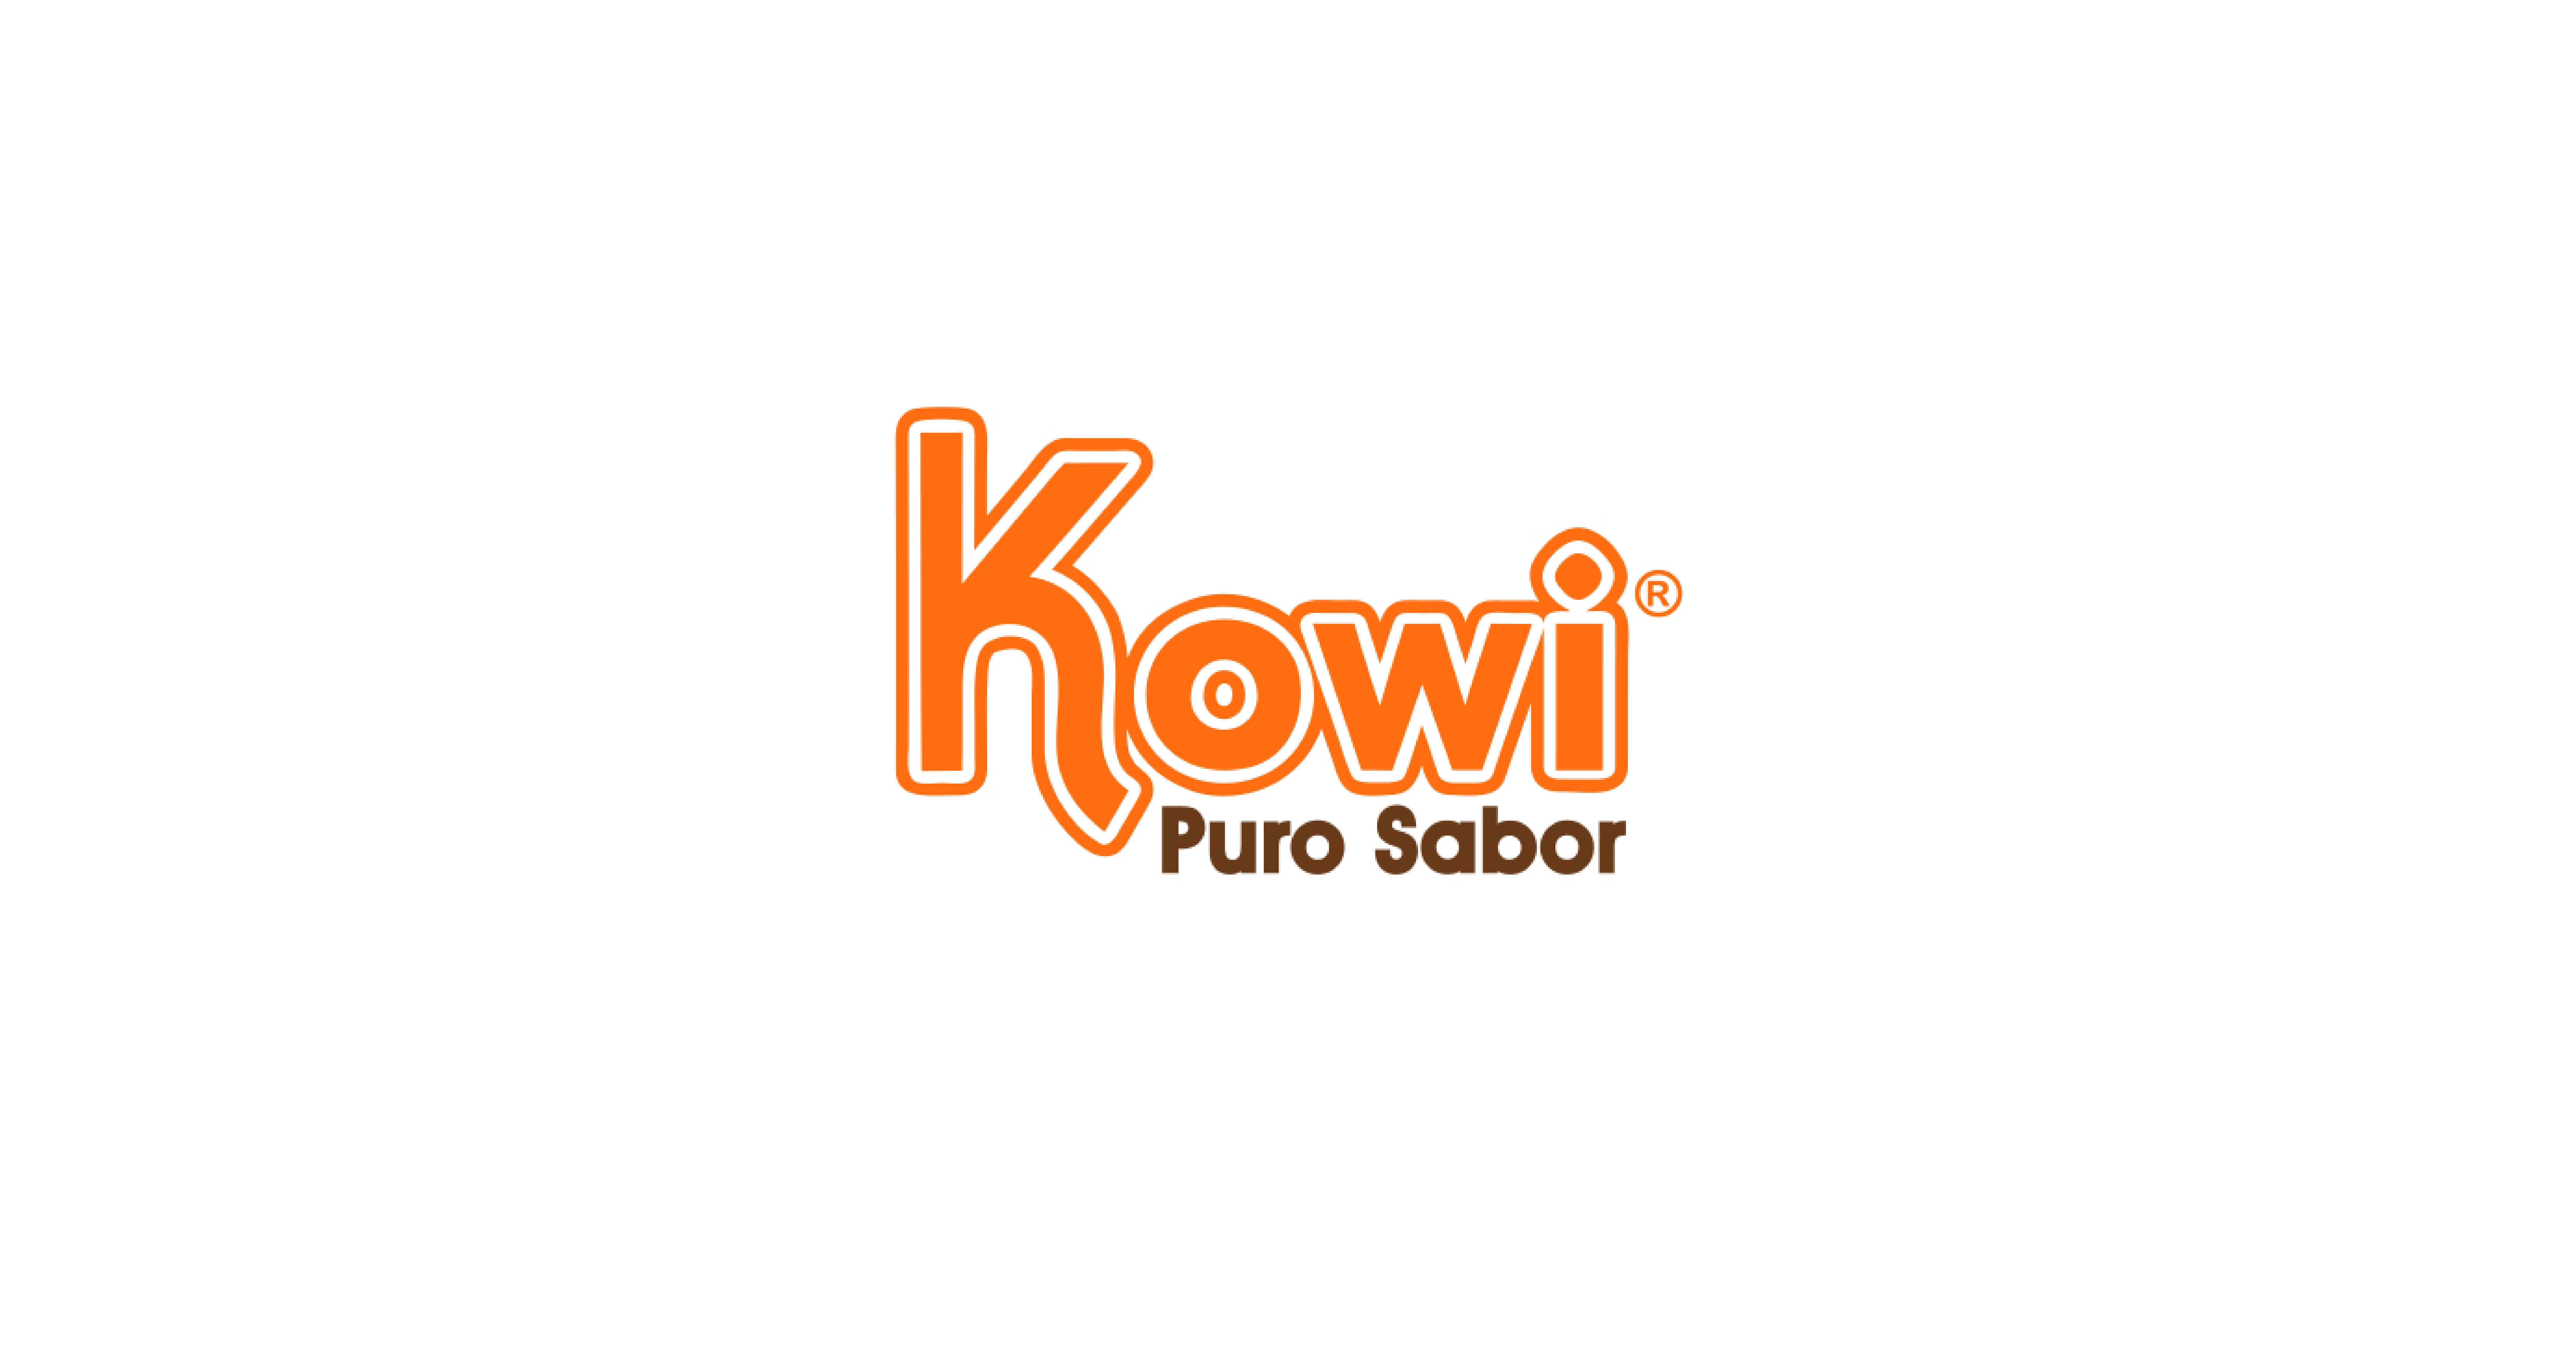 Kowi Group increases share of Topigs Norsvin genetics